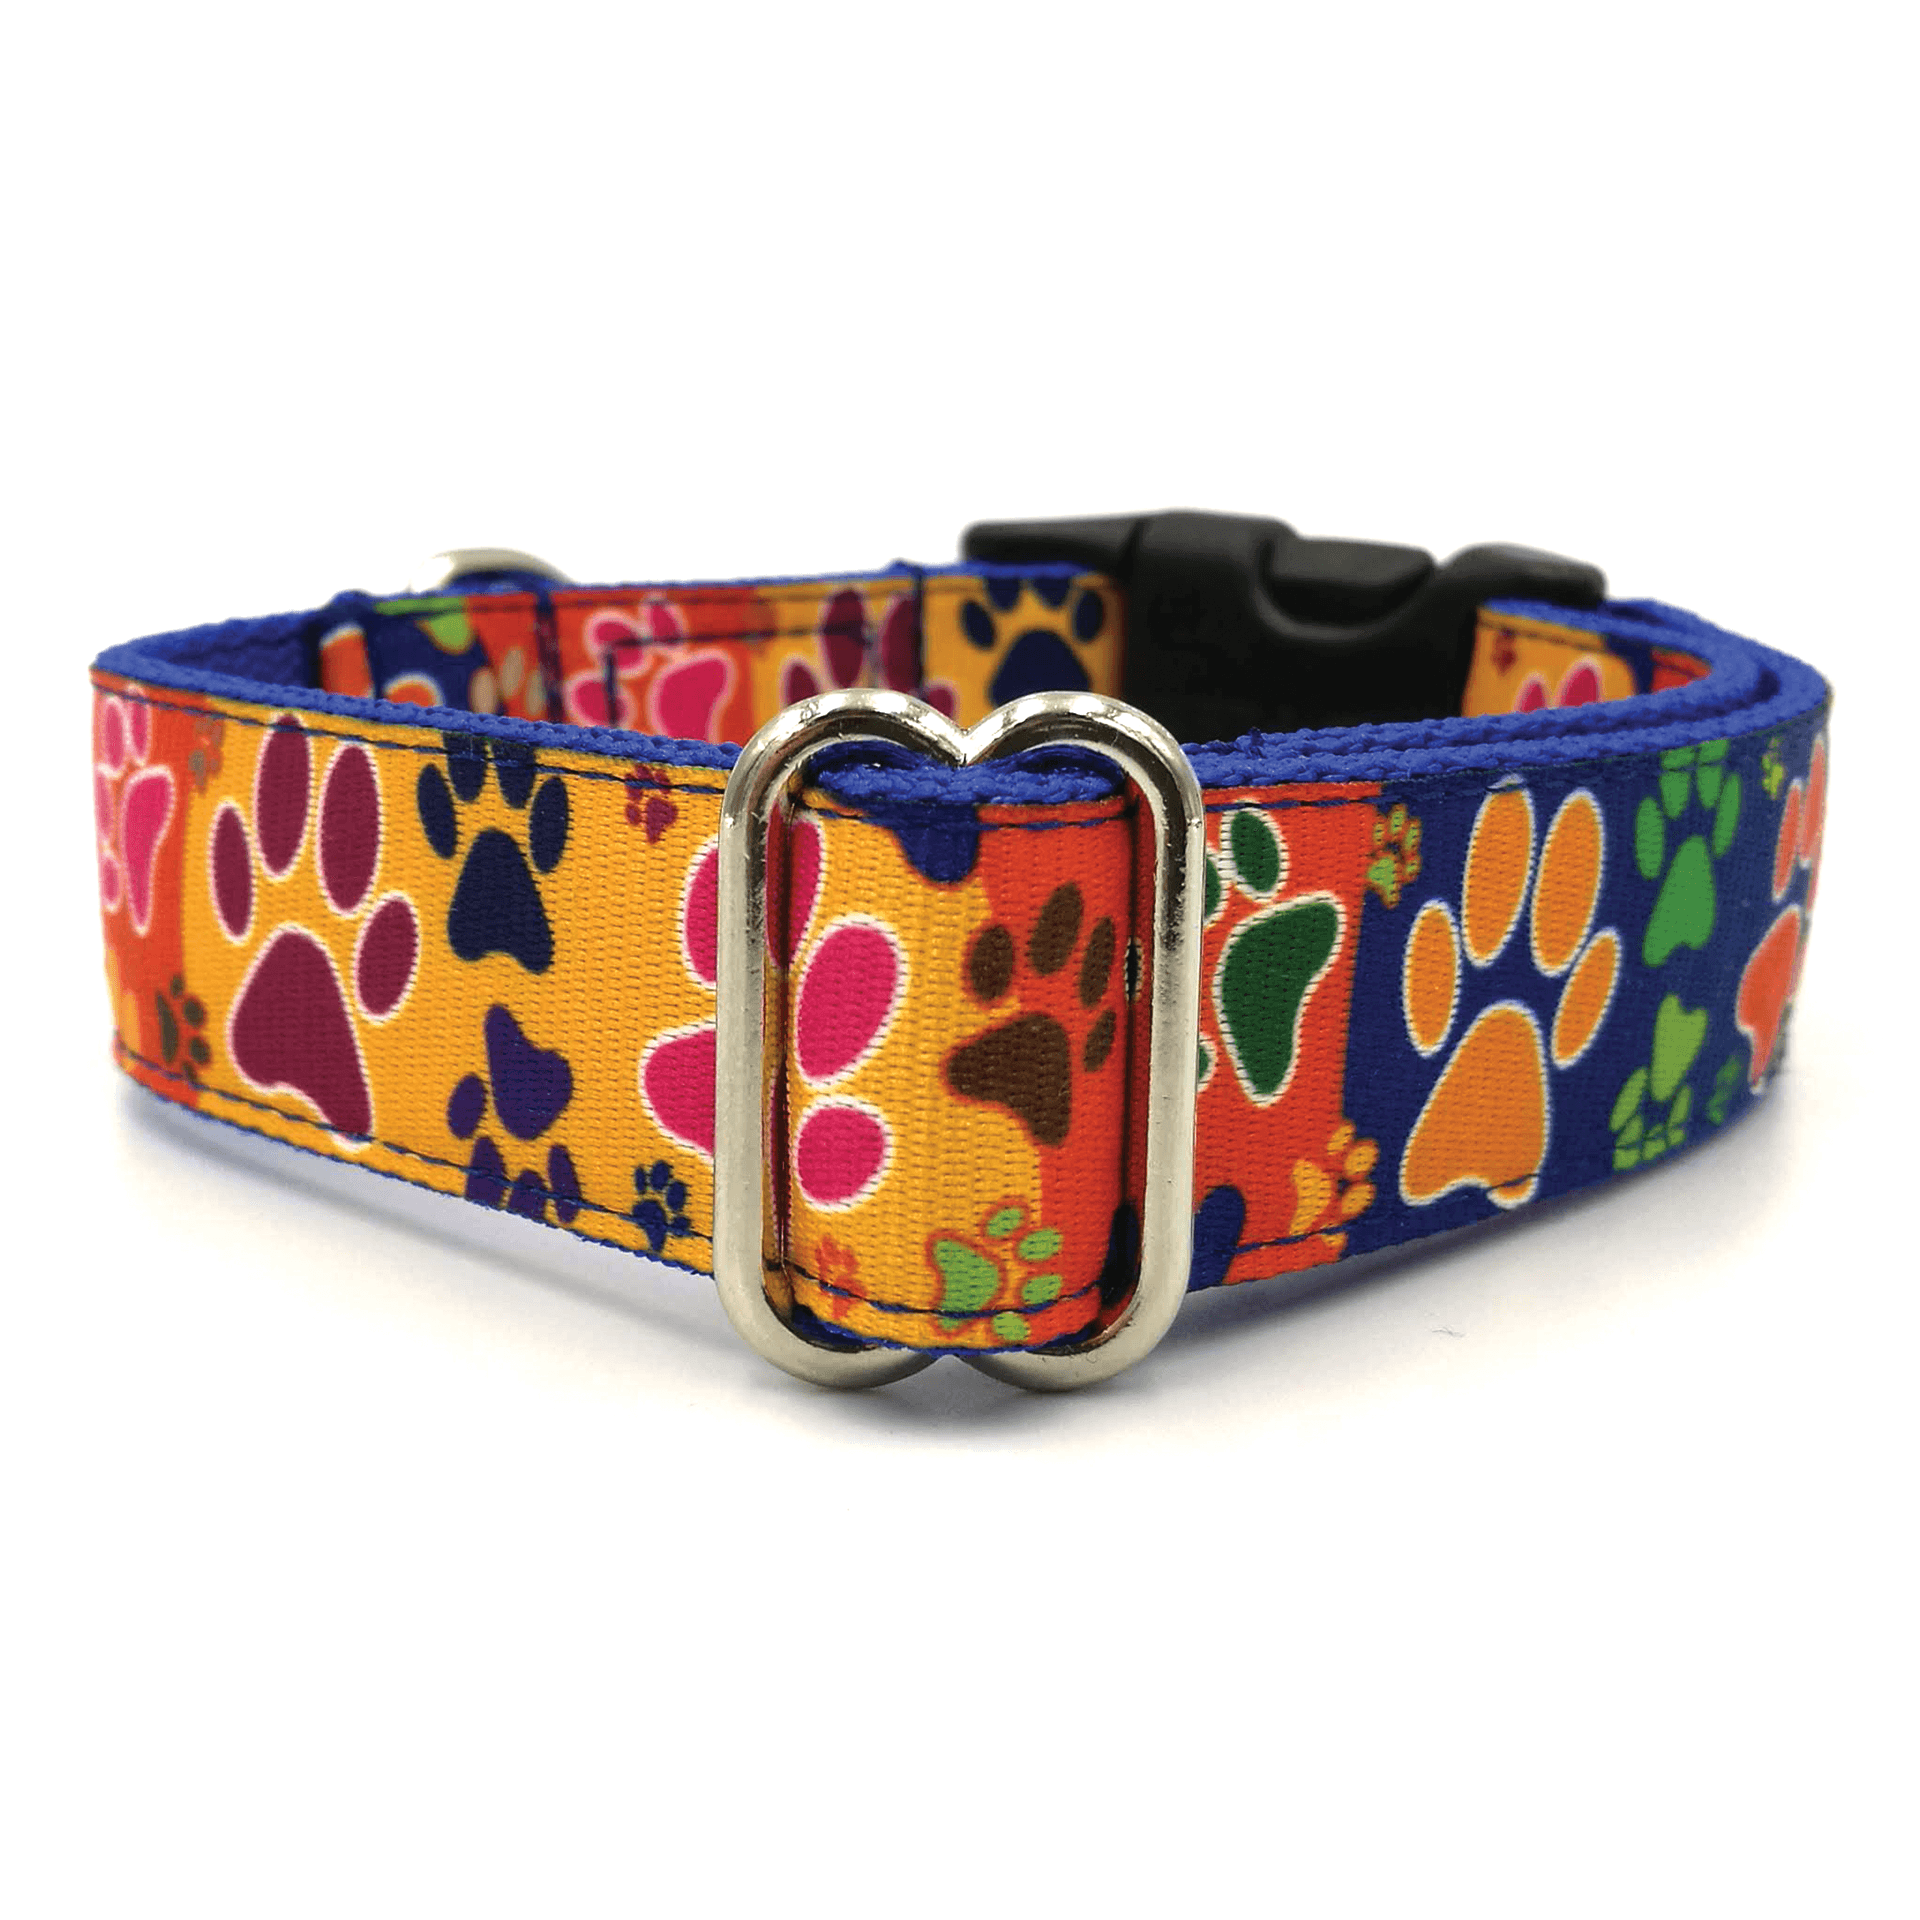 Paws dog collar